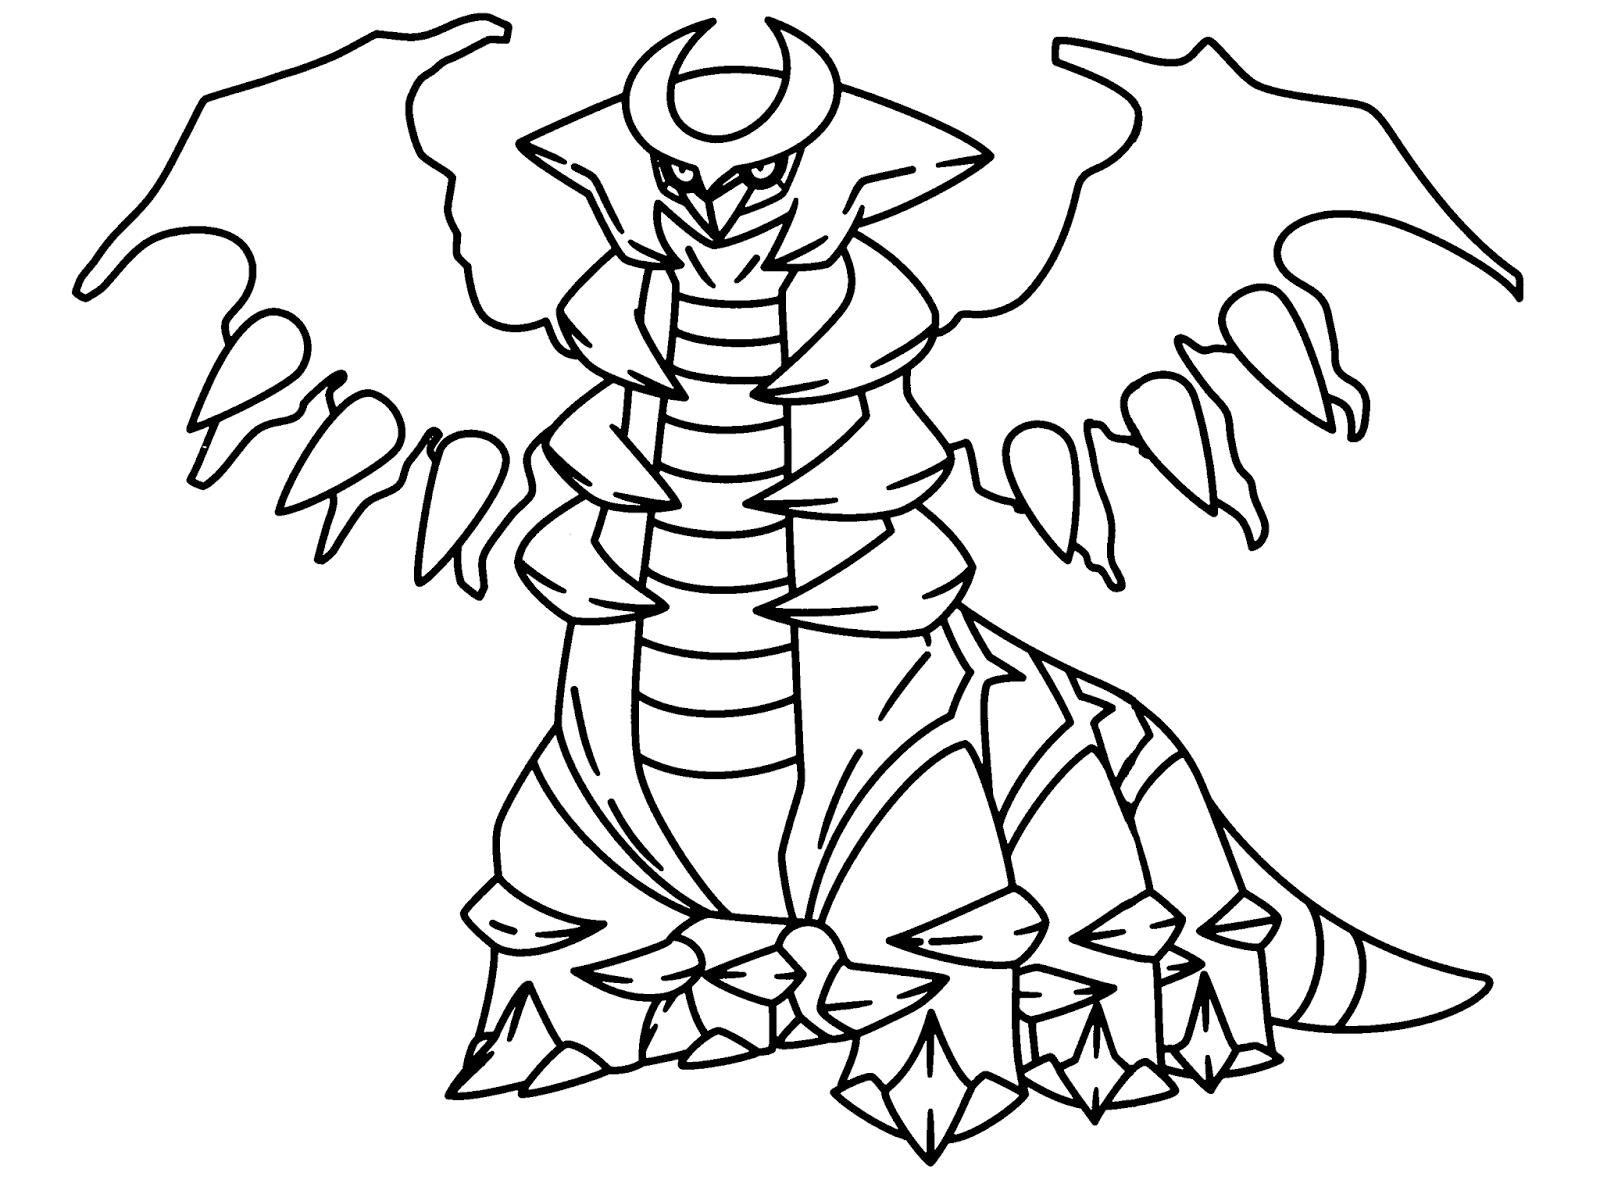 Http Colorings Co Pokemon Legendary Coloring Pages Pokemon Coloring Pokemon Coloring Pages Cartoon Coloring Pages